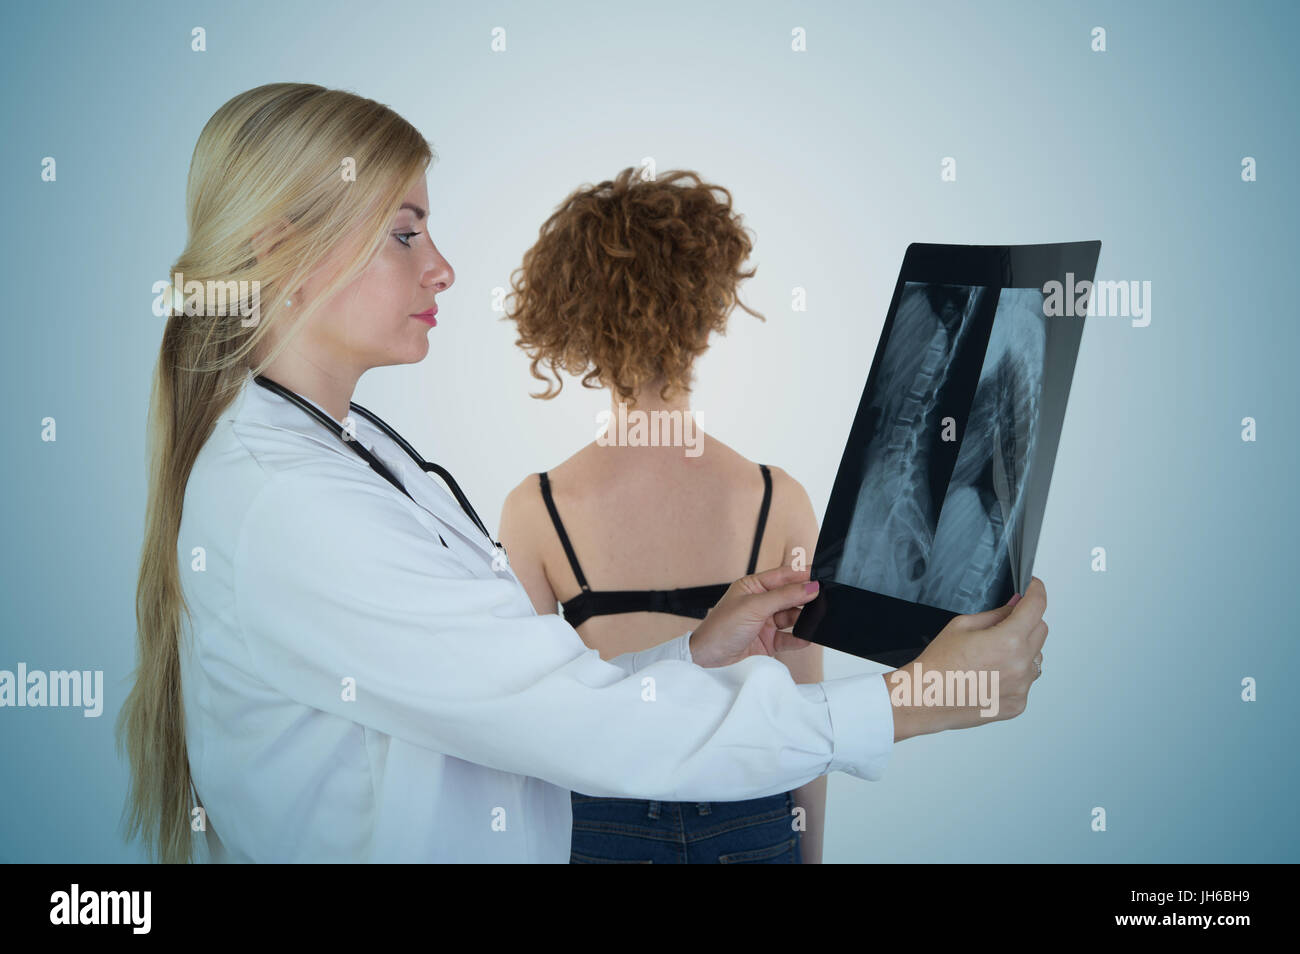 Young blonde female orthopedic doctor visits young patient with stethoscope - Stock Image